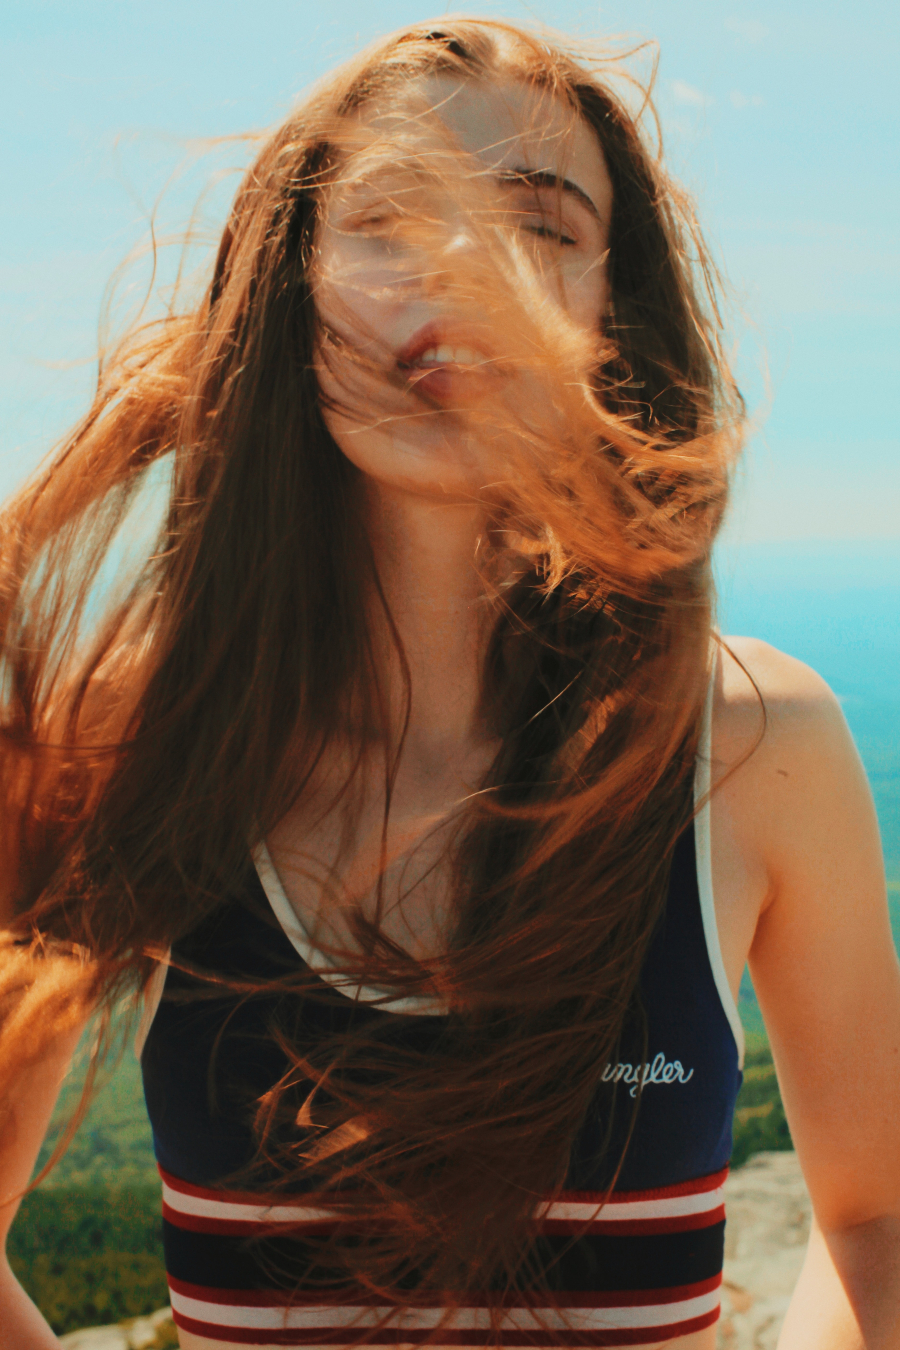 Girl with red frizzy hair flowing in the wind at the beach